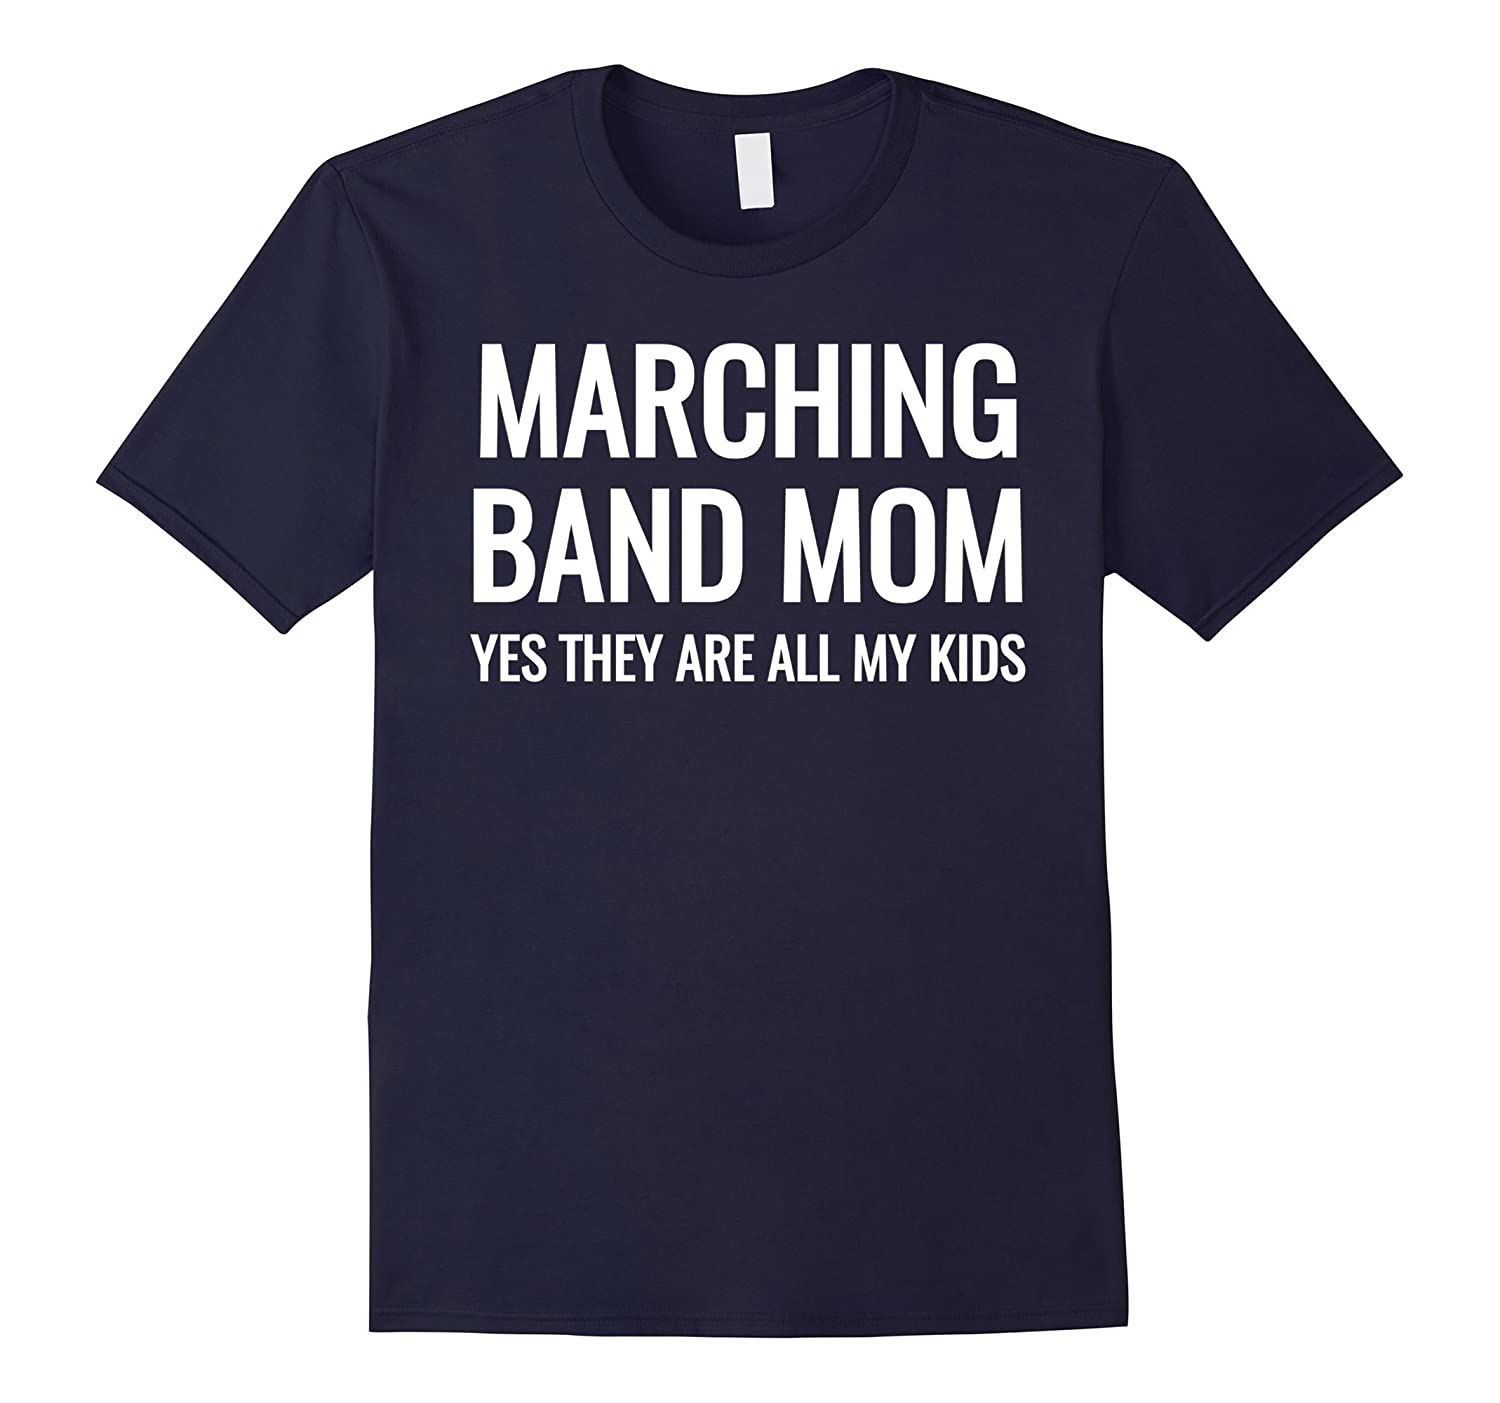 adf2b6736 Marching Band Mom Yes They Are All My Kids Funny T-Shirts –  Febaaccessories.com